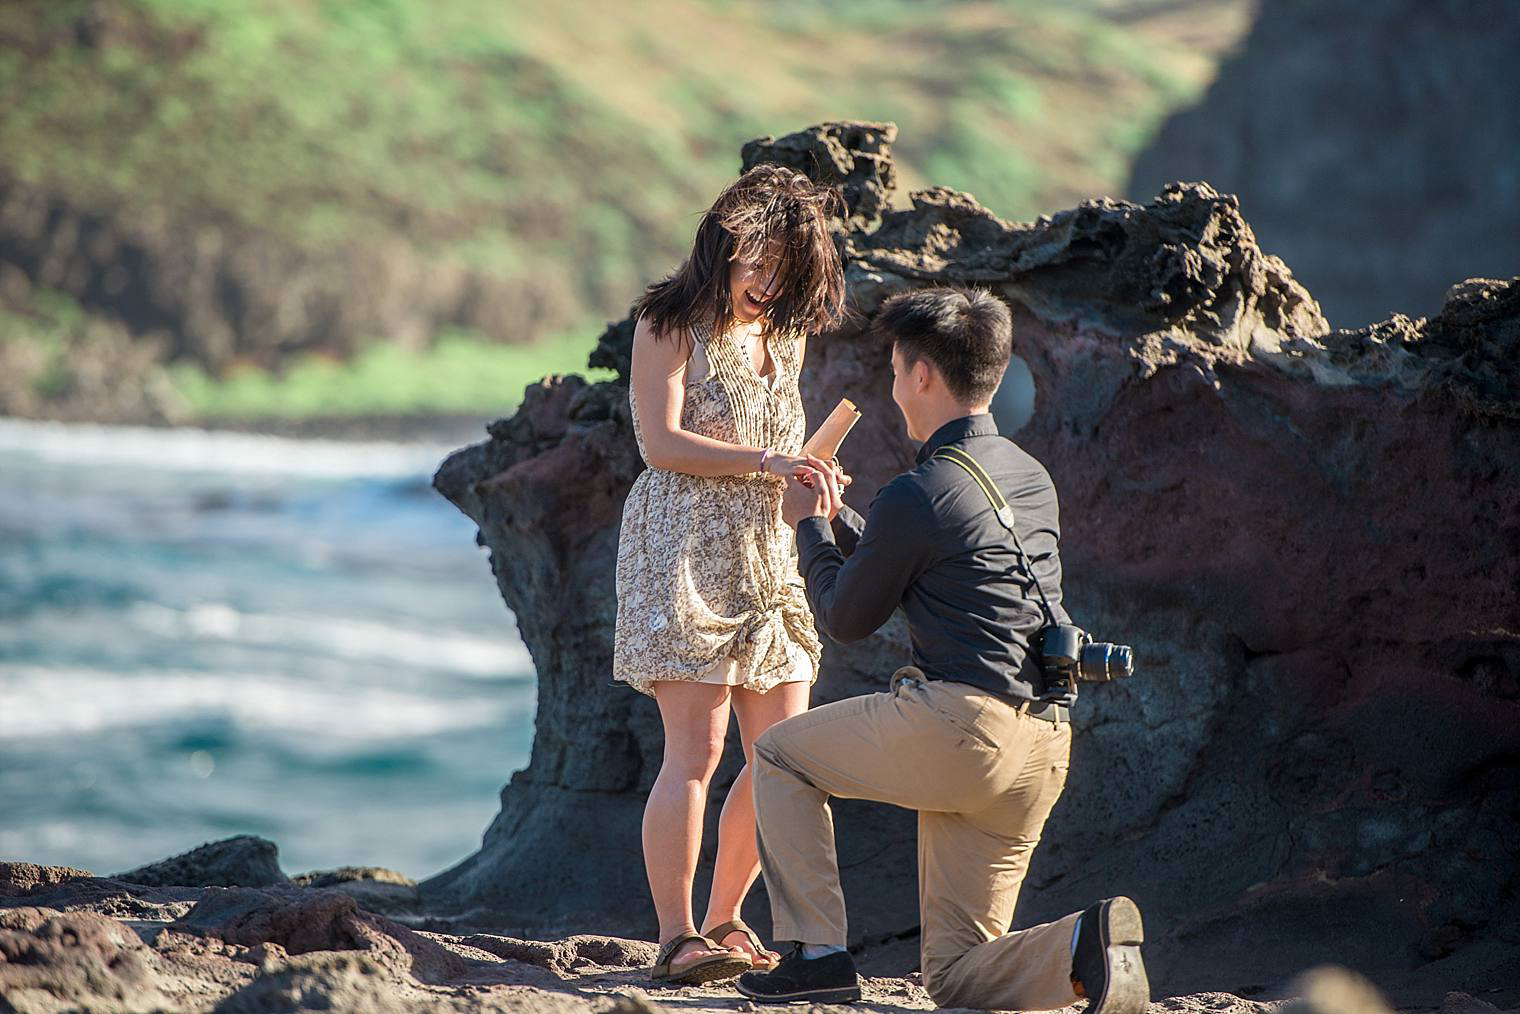 Surprise heart rock proposal in maui, hawaii